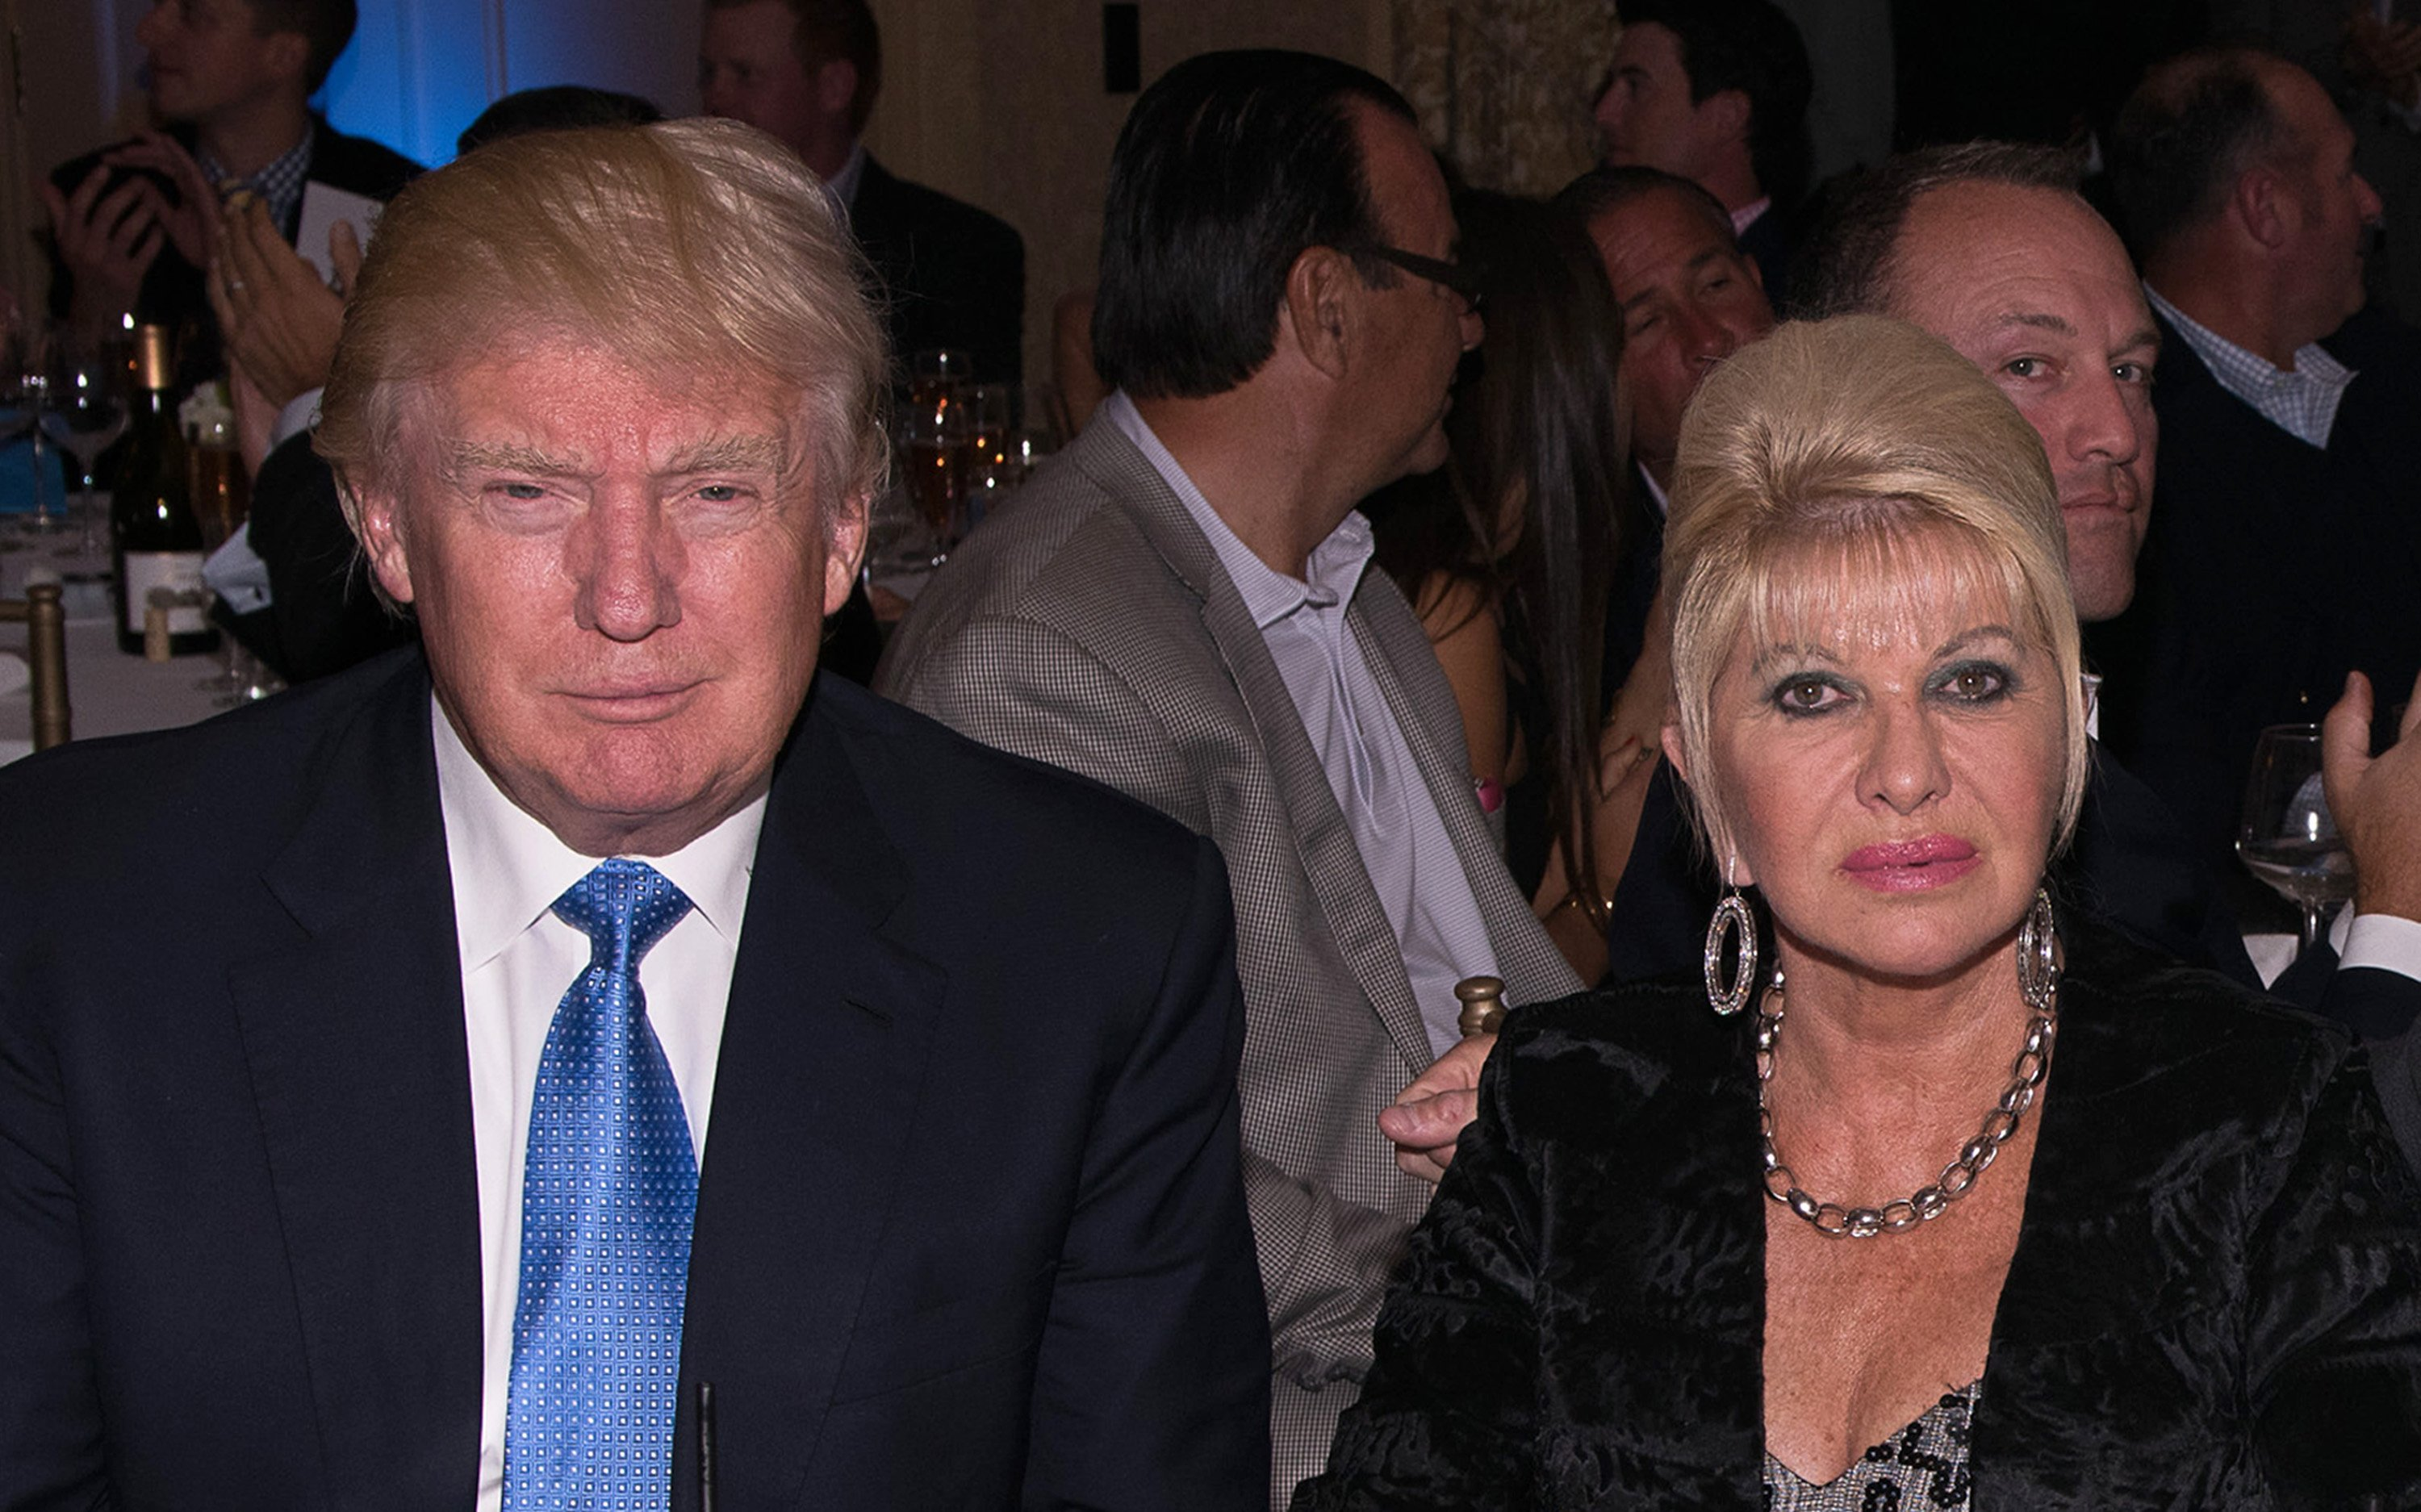 Donald Trump, Ivana Trump on September 15, 2014 in Briarcliff Manor, New York | Photo: Getty Images